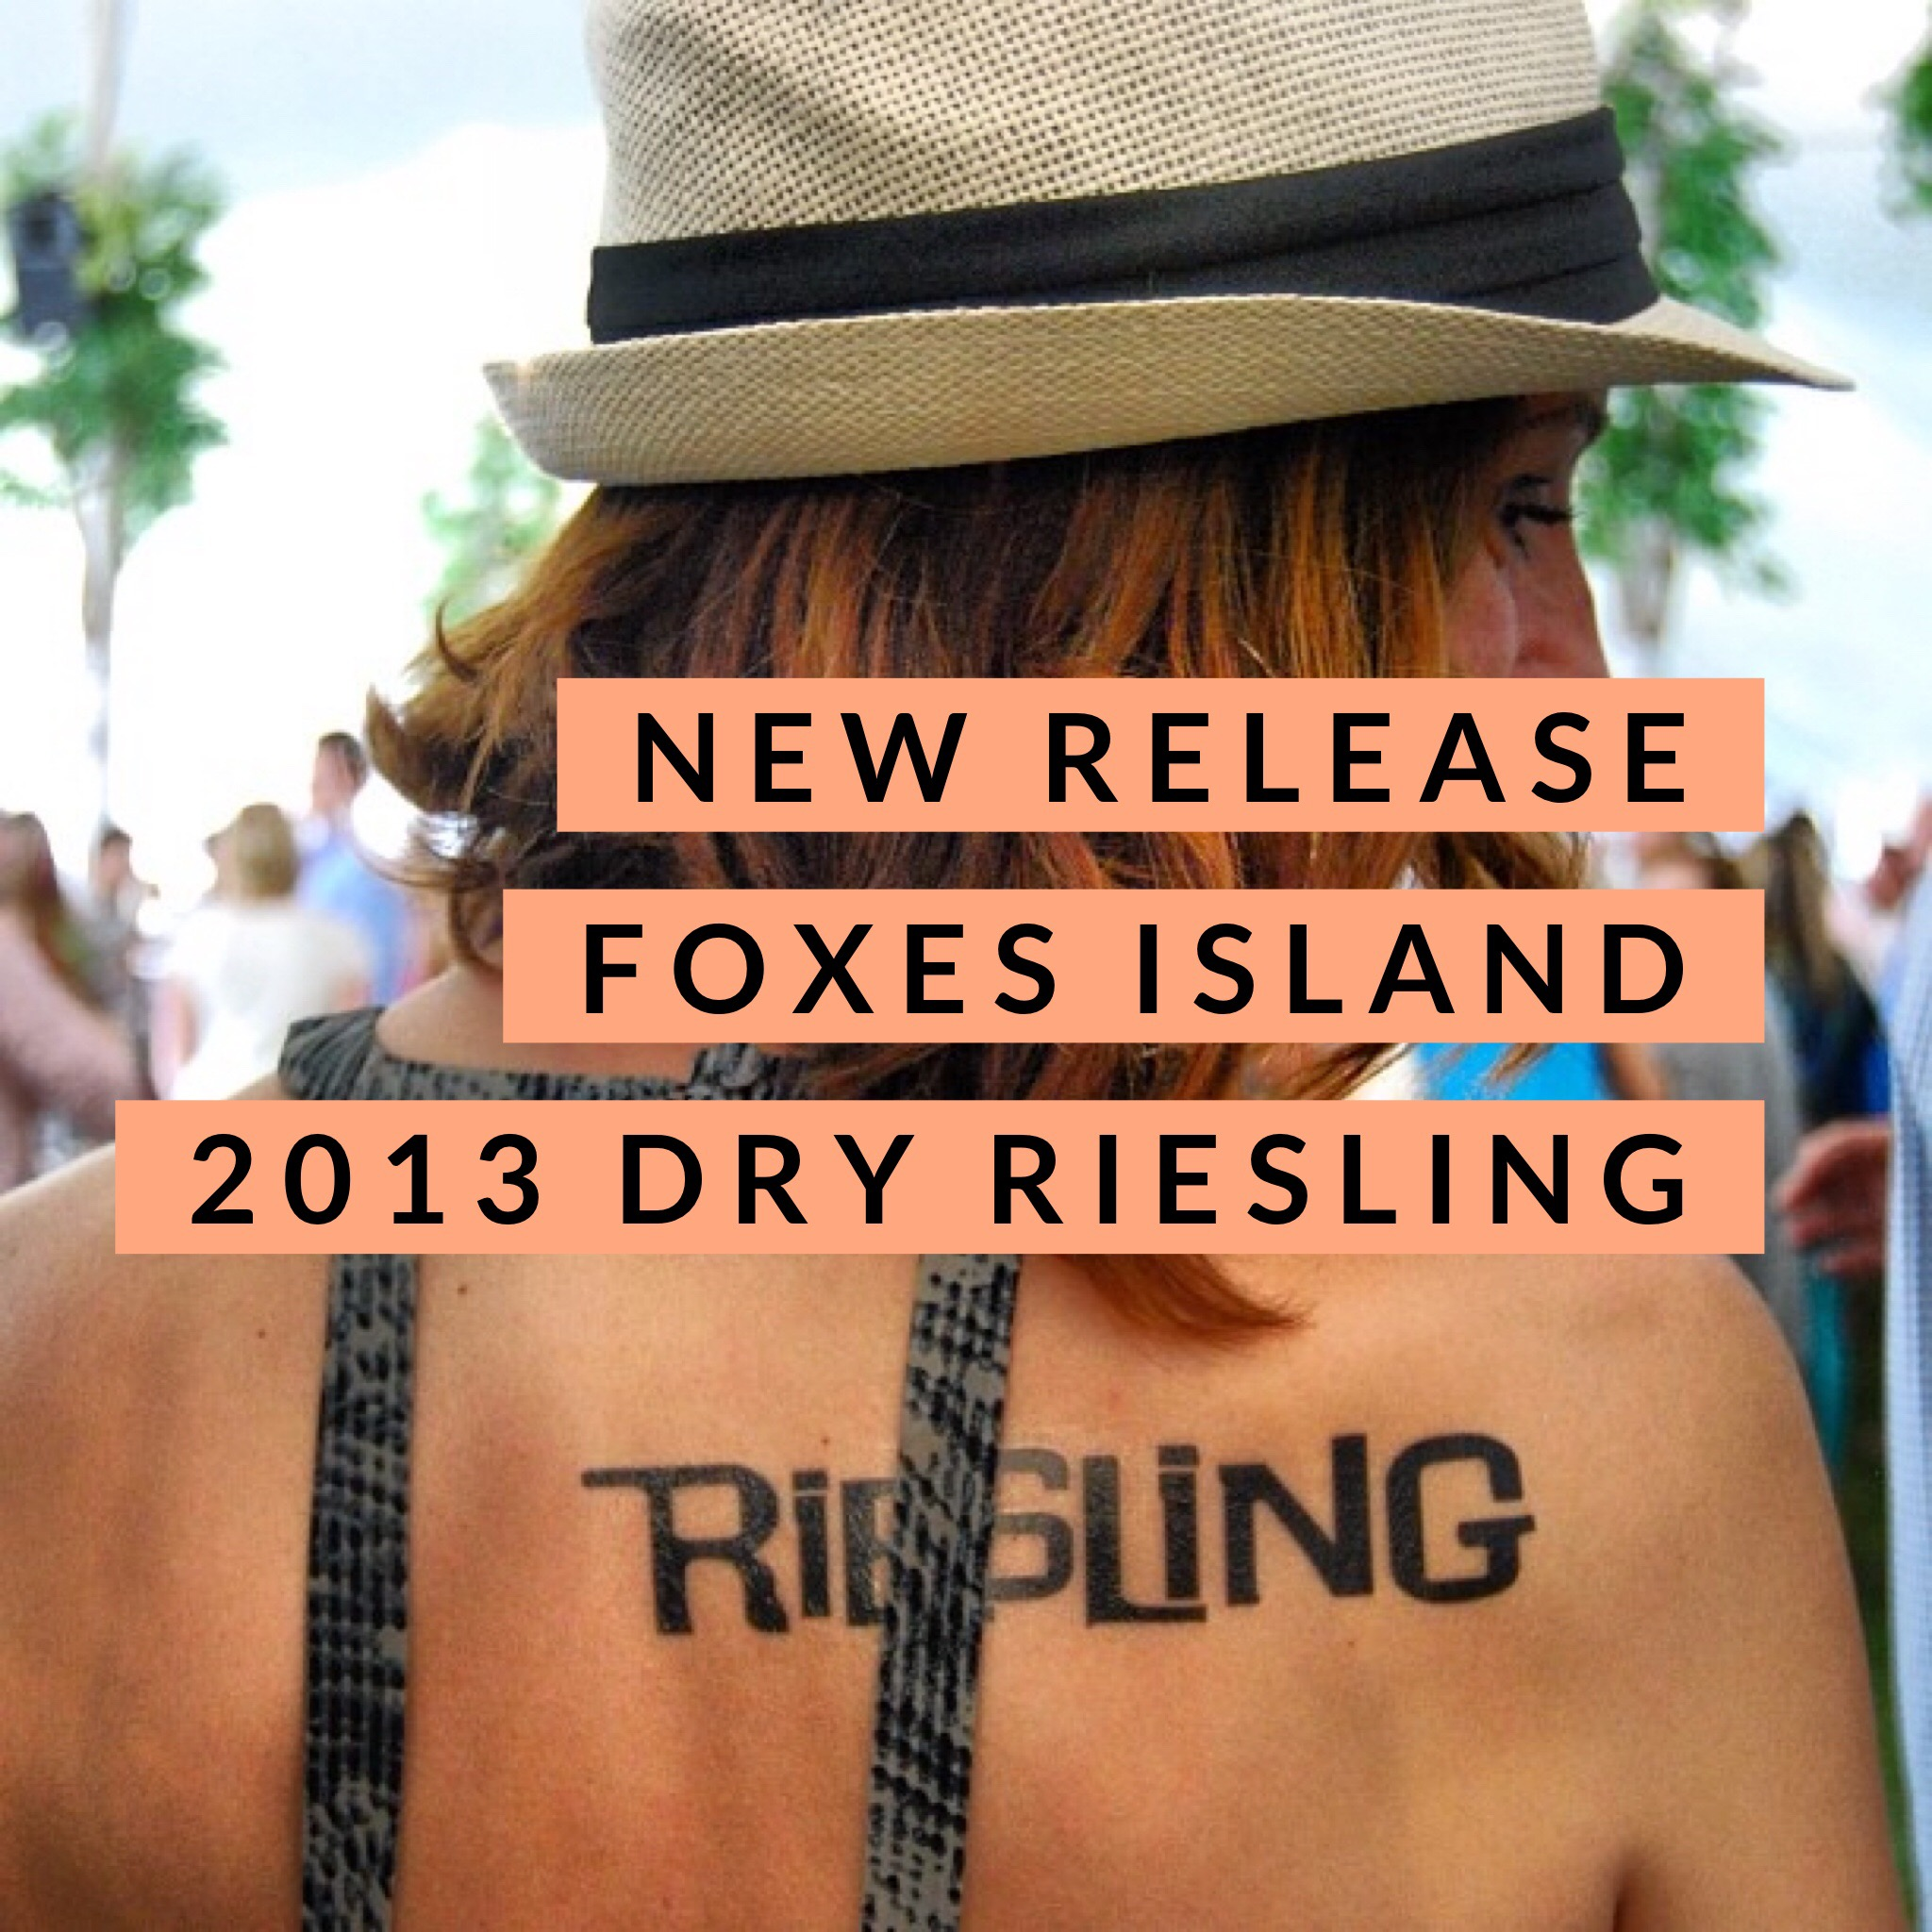 Foxes Island Dry Riesling 2013